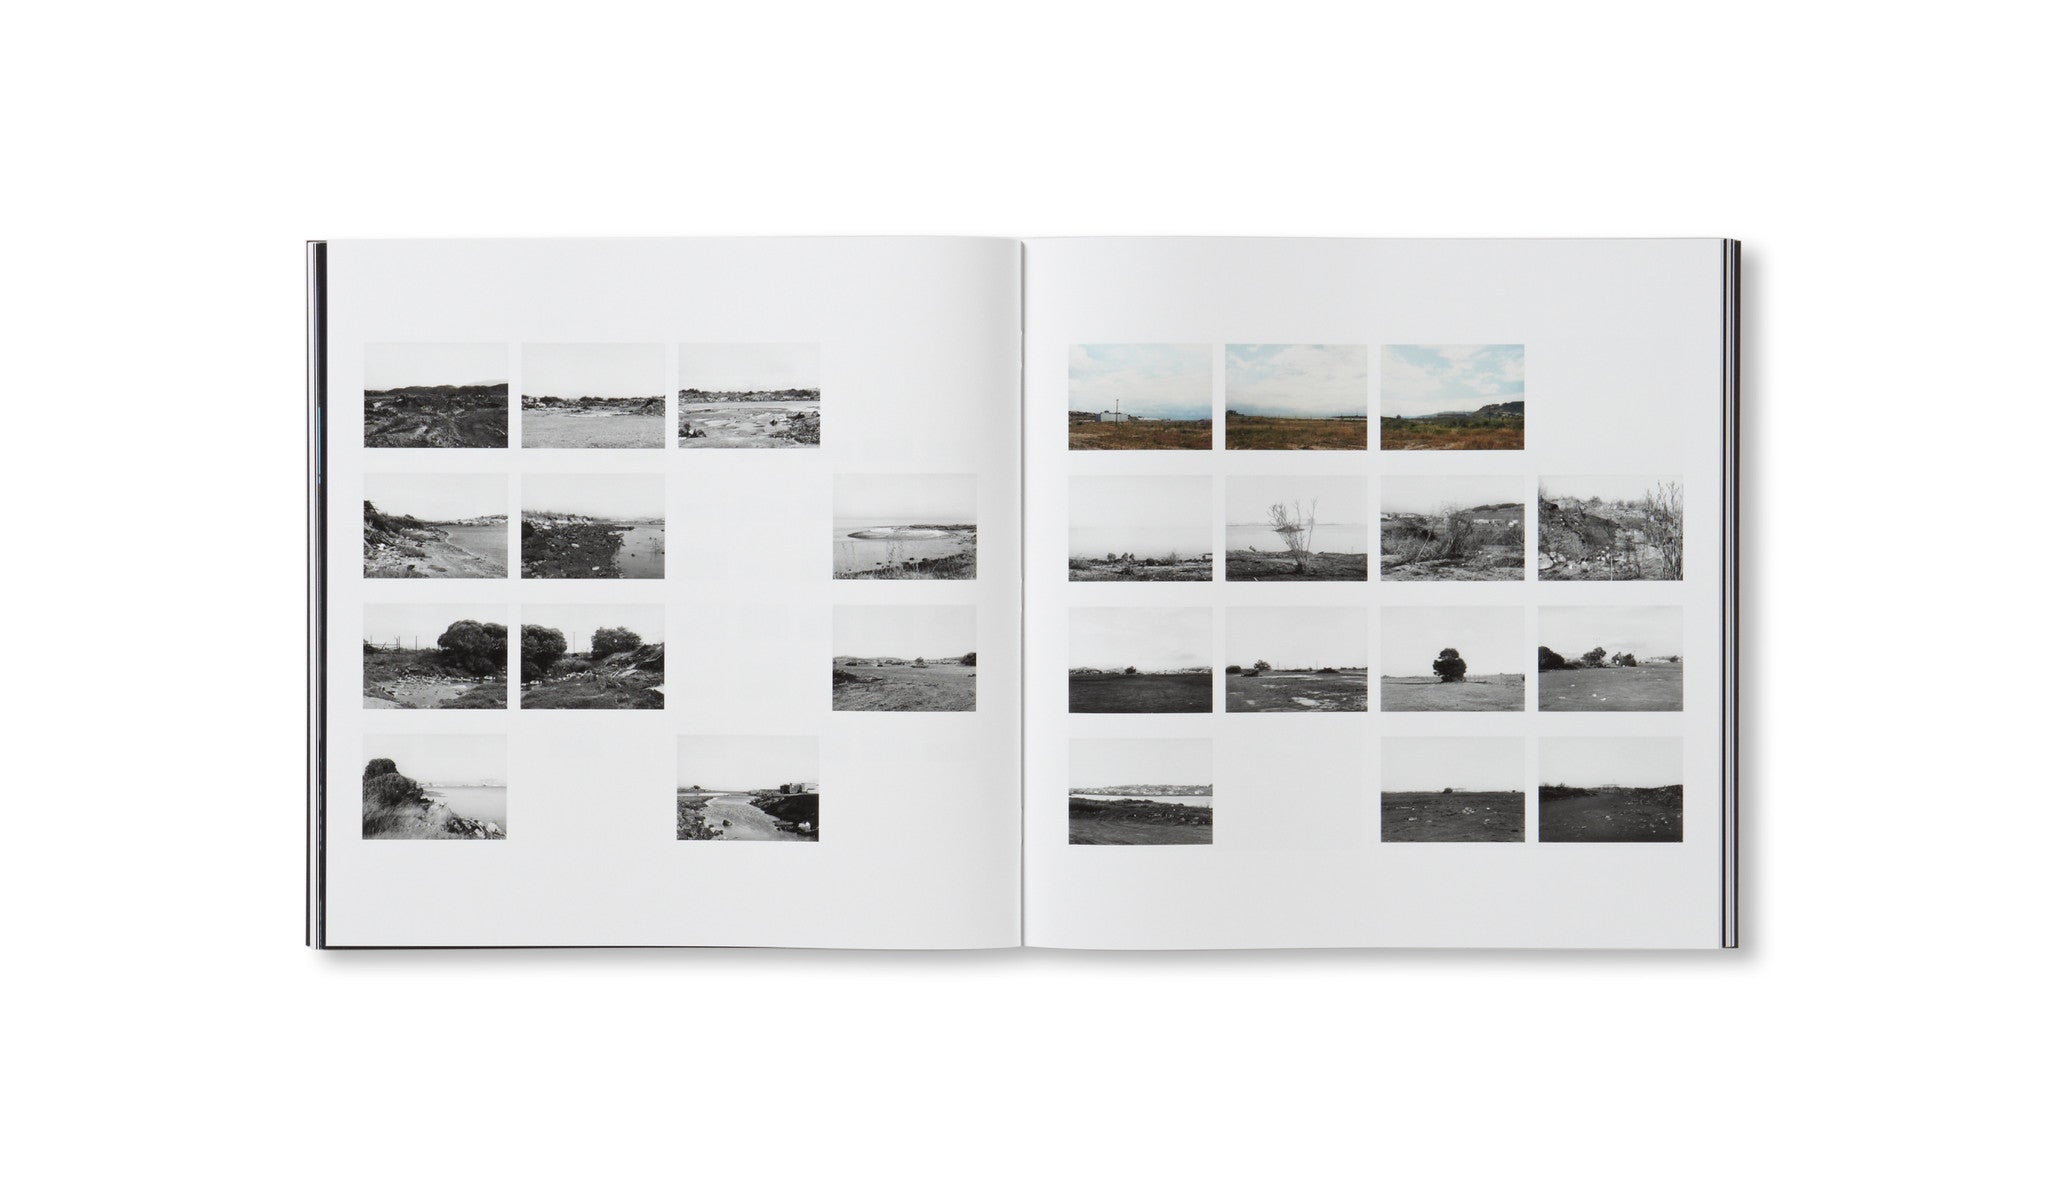 COMMON OBJECTS by Lewis Baltz